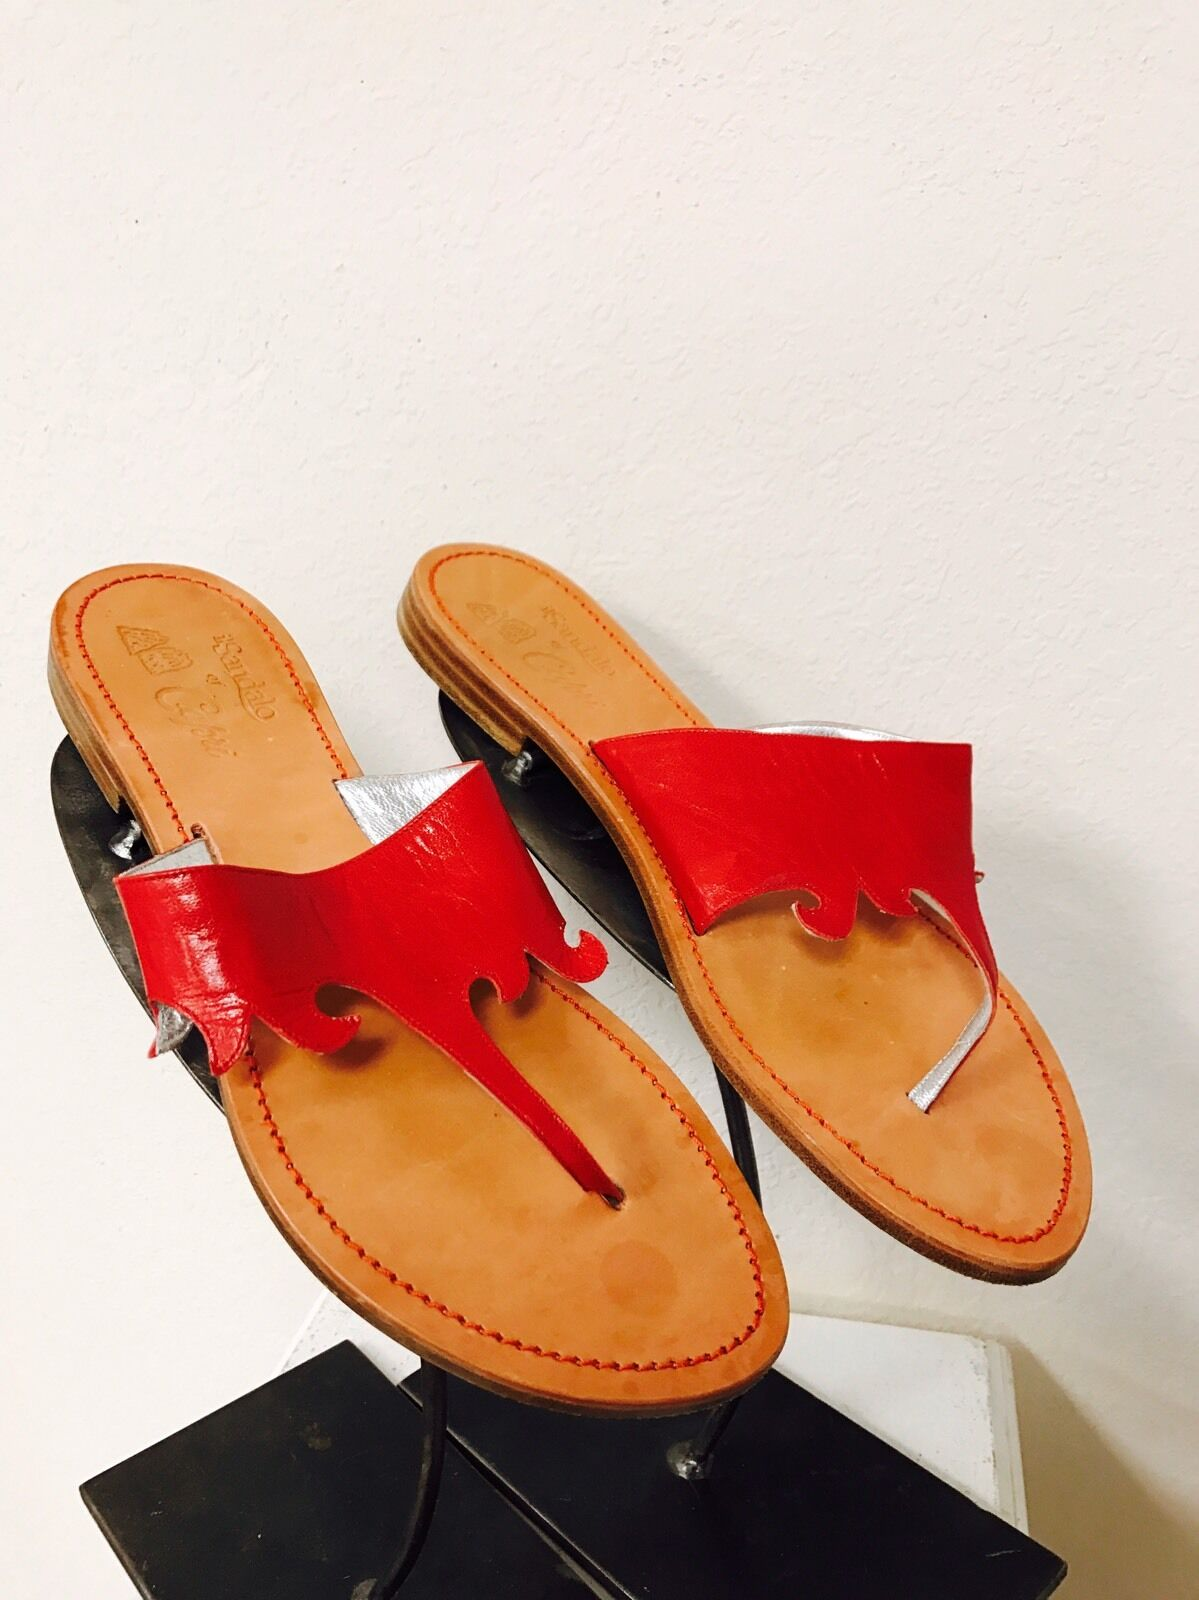 IL Sandalo of Capri Red Leather Thong Sandals Flats 40 10